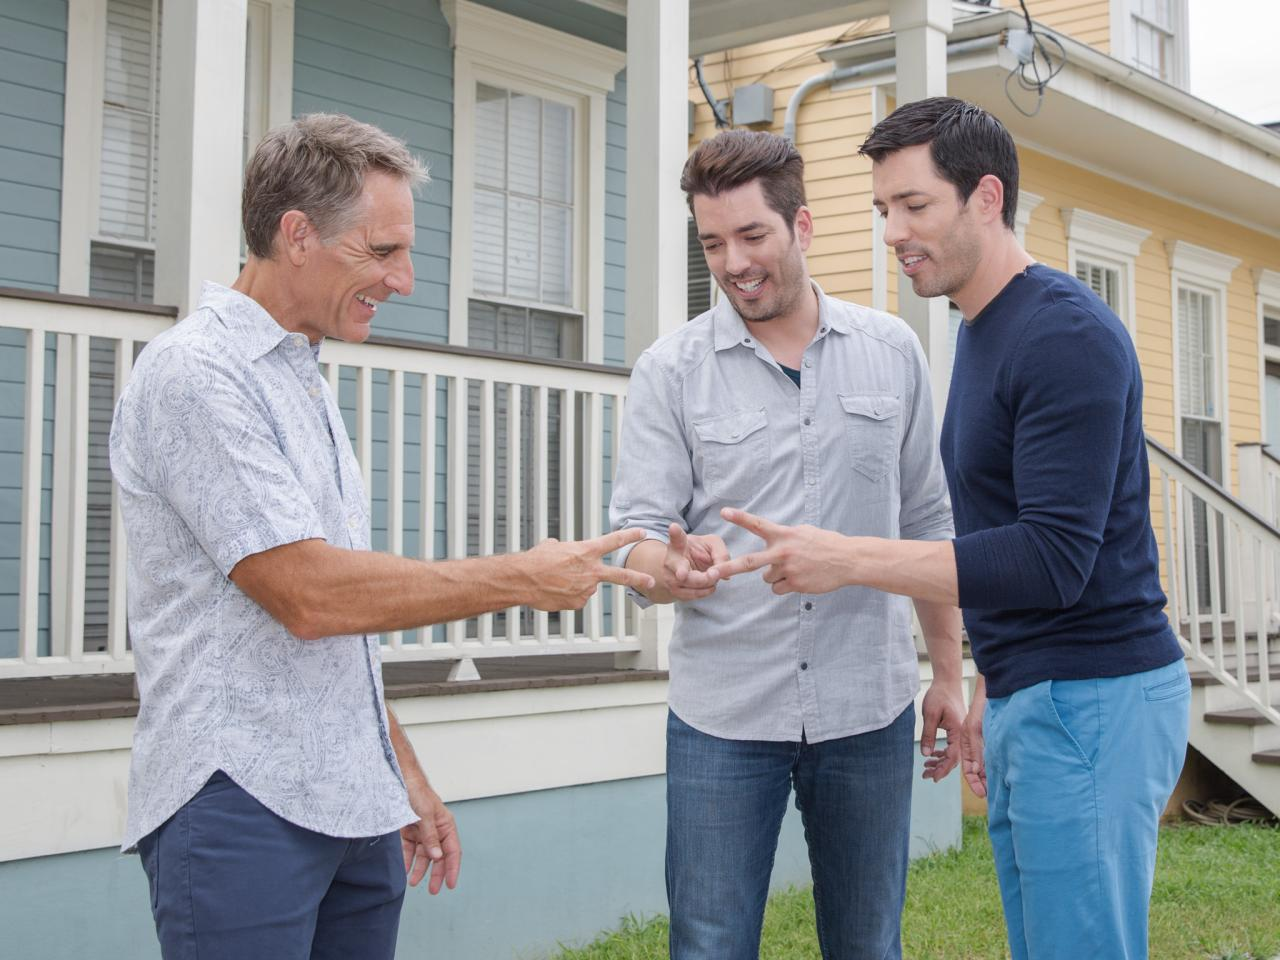 two to one new orleans homes lifestyles february 2009 new jonathan and drew scott take on a new orleans design challenge new orleans home design